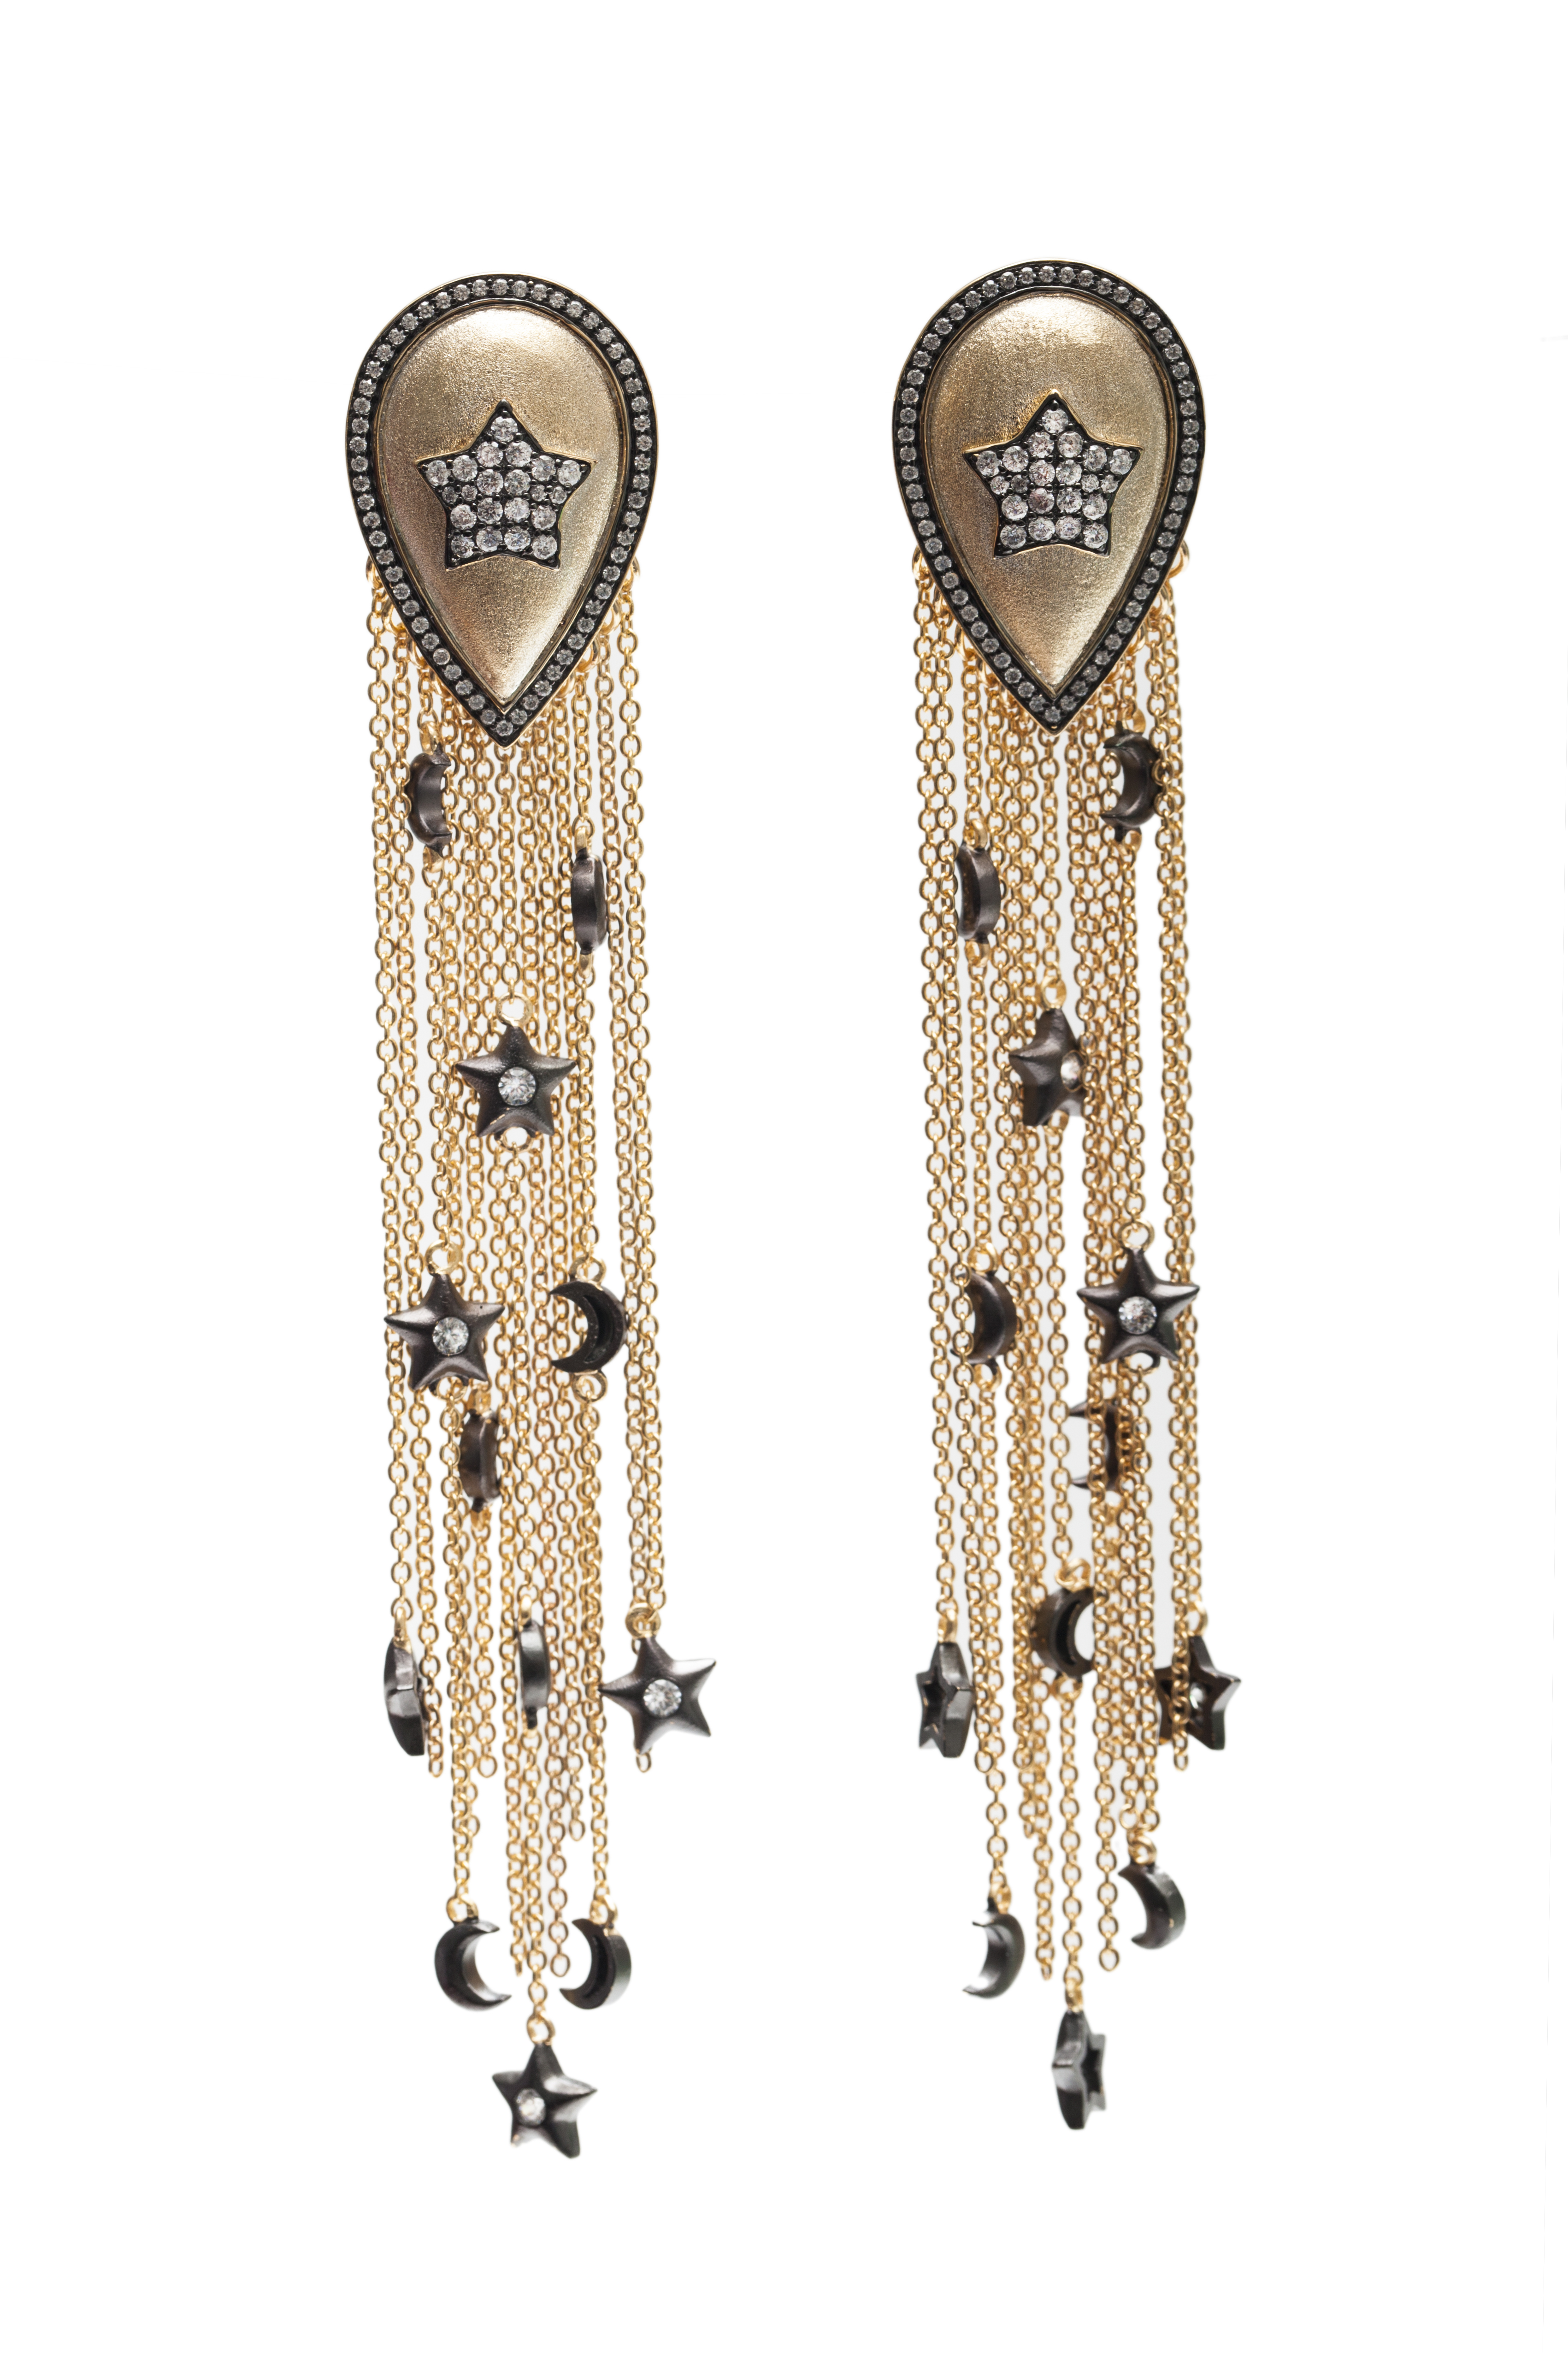 Pave Star Drop Earrings with Long Tassels and Charms by AMMANII on curated-crowd.com